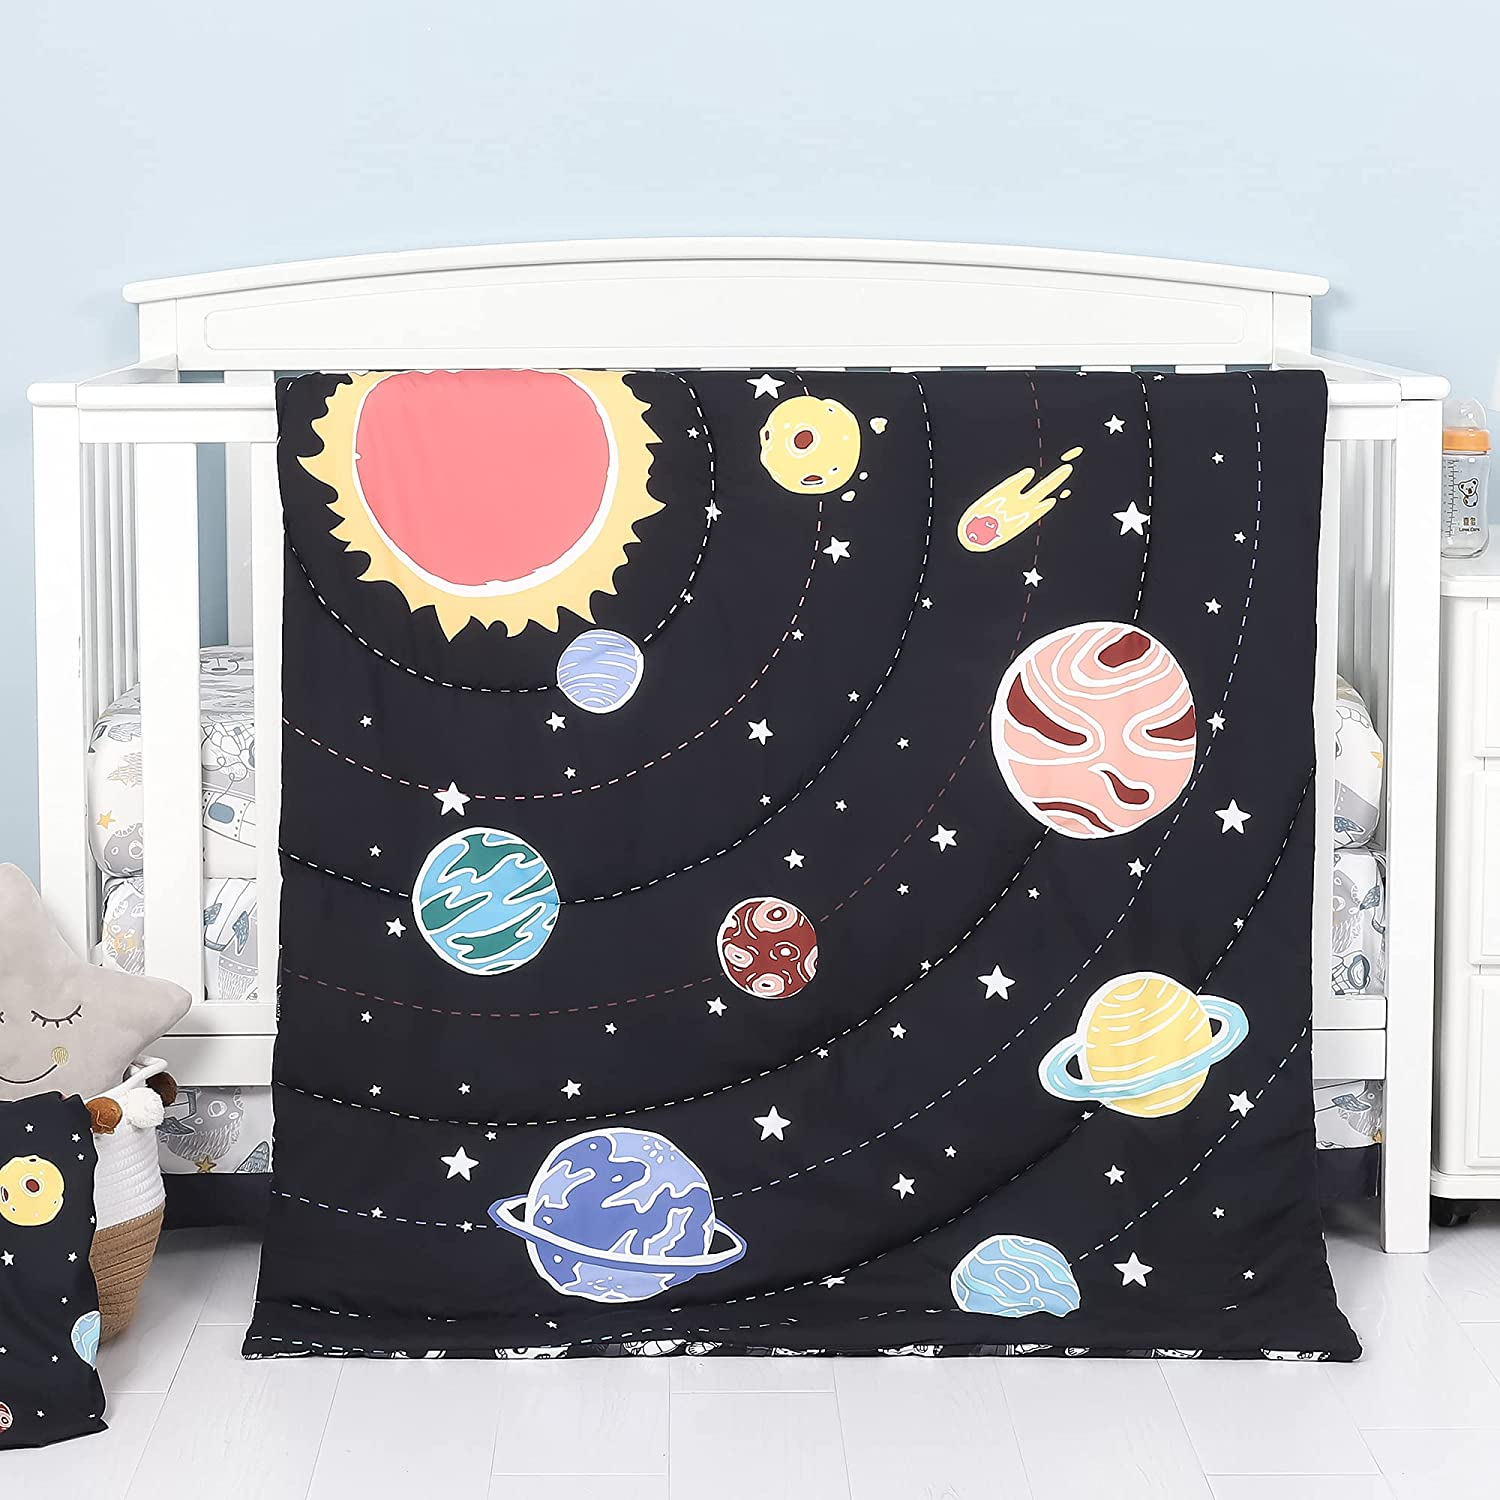 TILLYOU 4-Piece Dealing full price reduction Space Theme Crib trust Bedding Nu Set Boys for Luxury